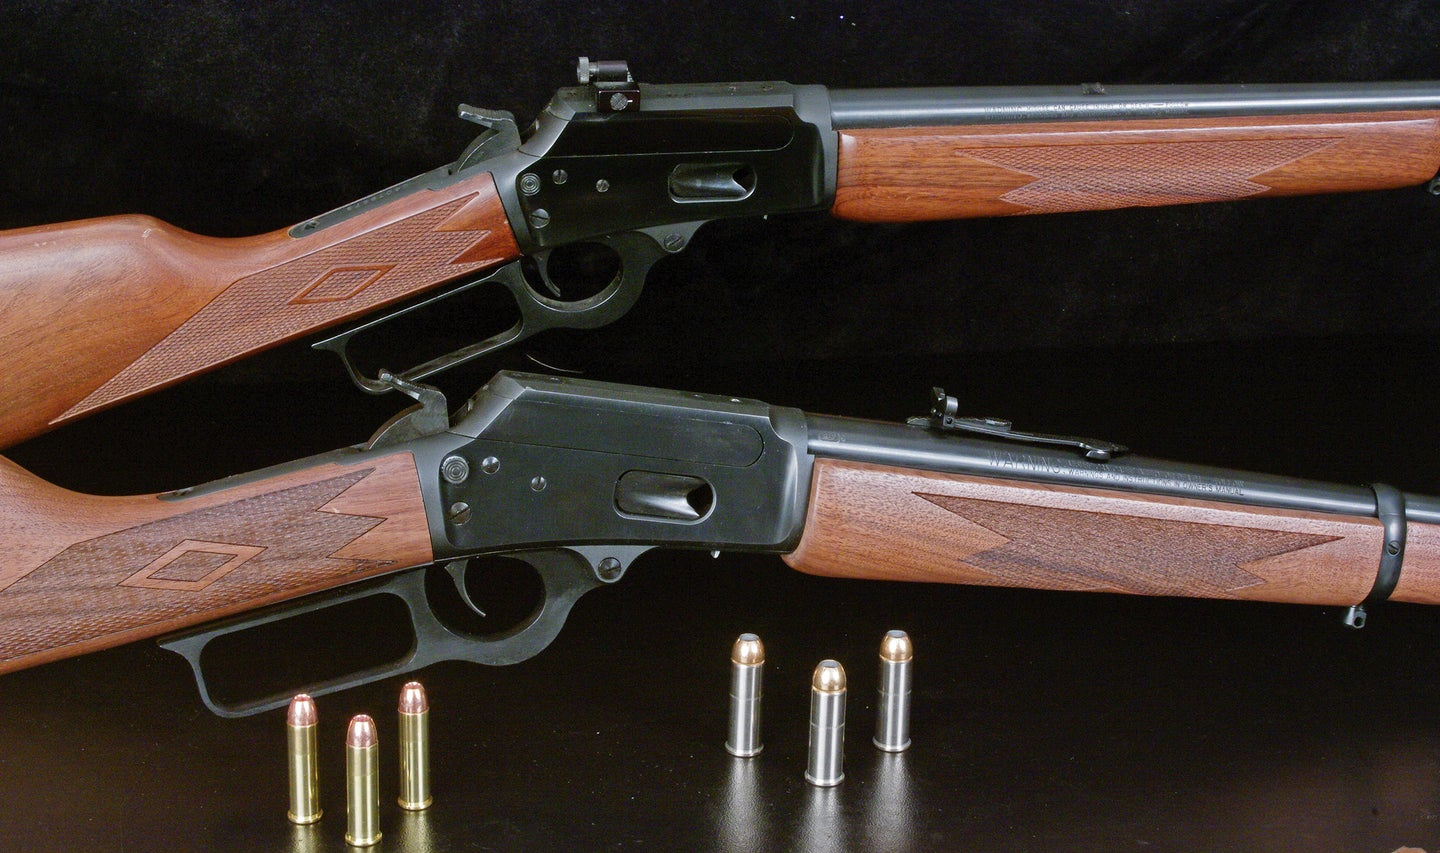 A pair of Marlin carbine rifles on a black background.